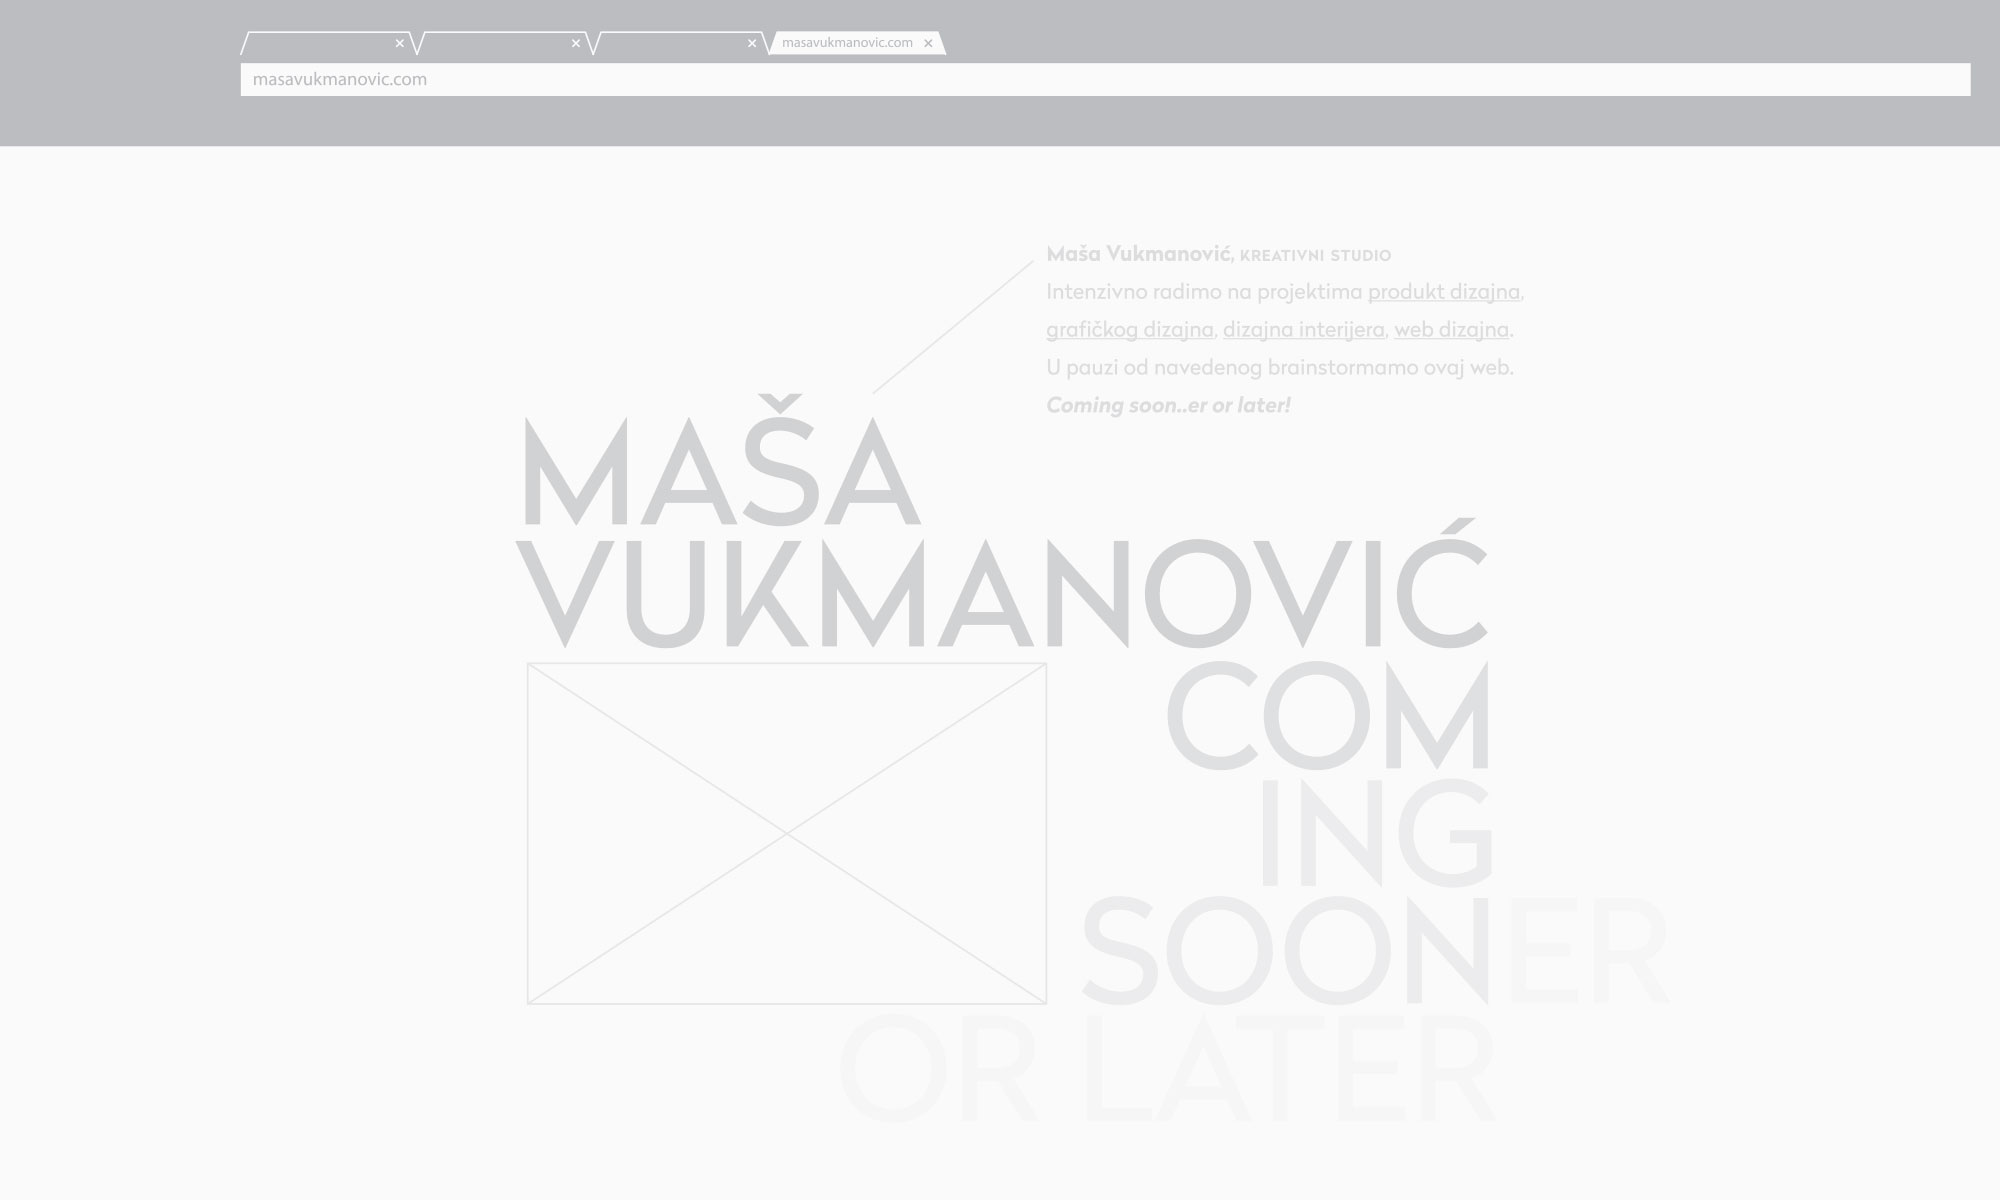 masavukmanovic.com - coming soon..er or later